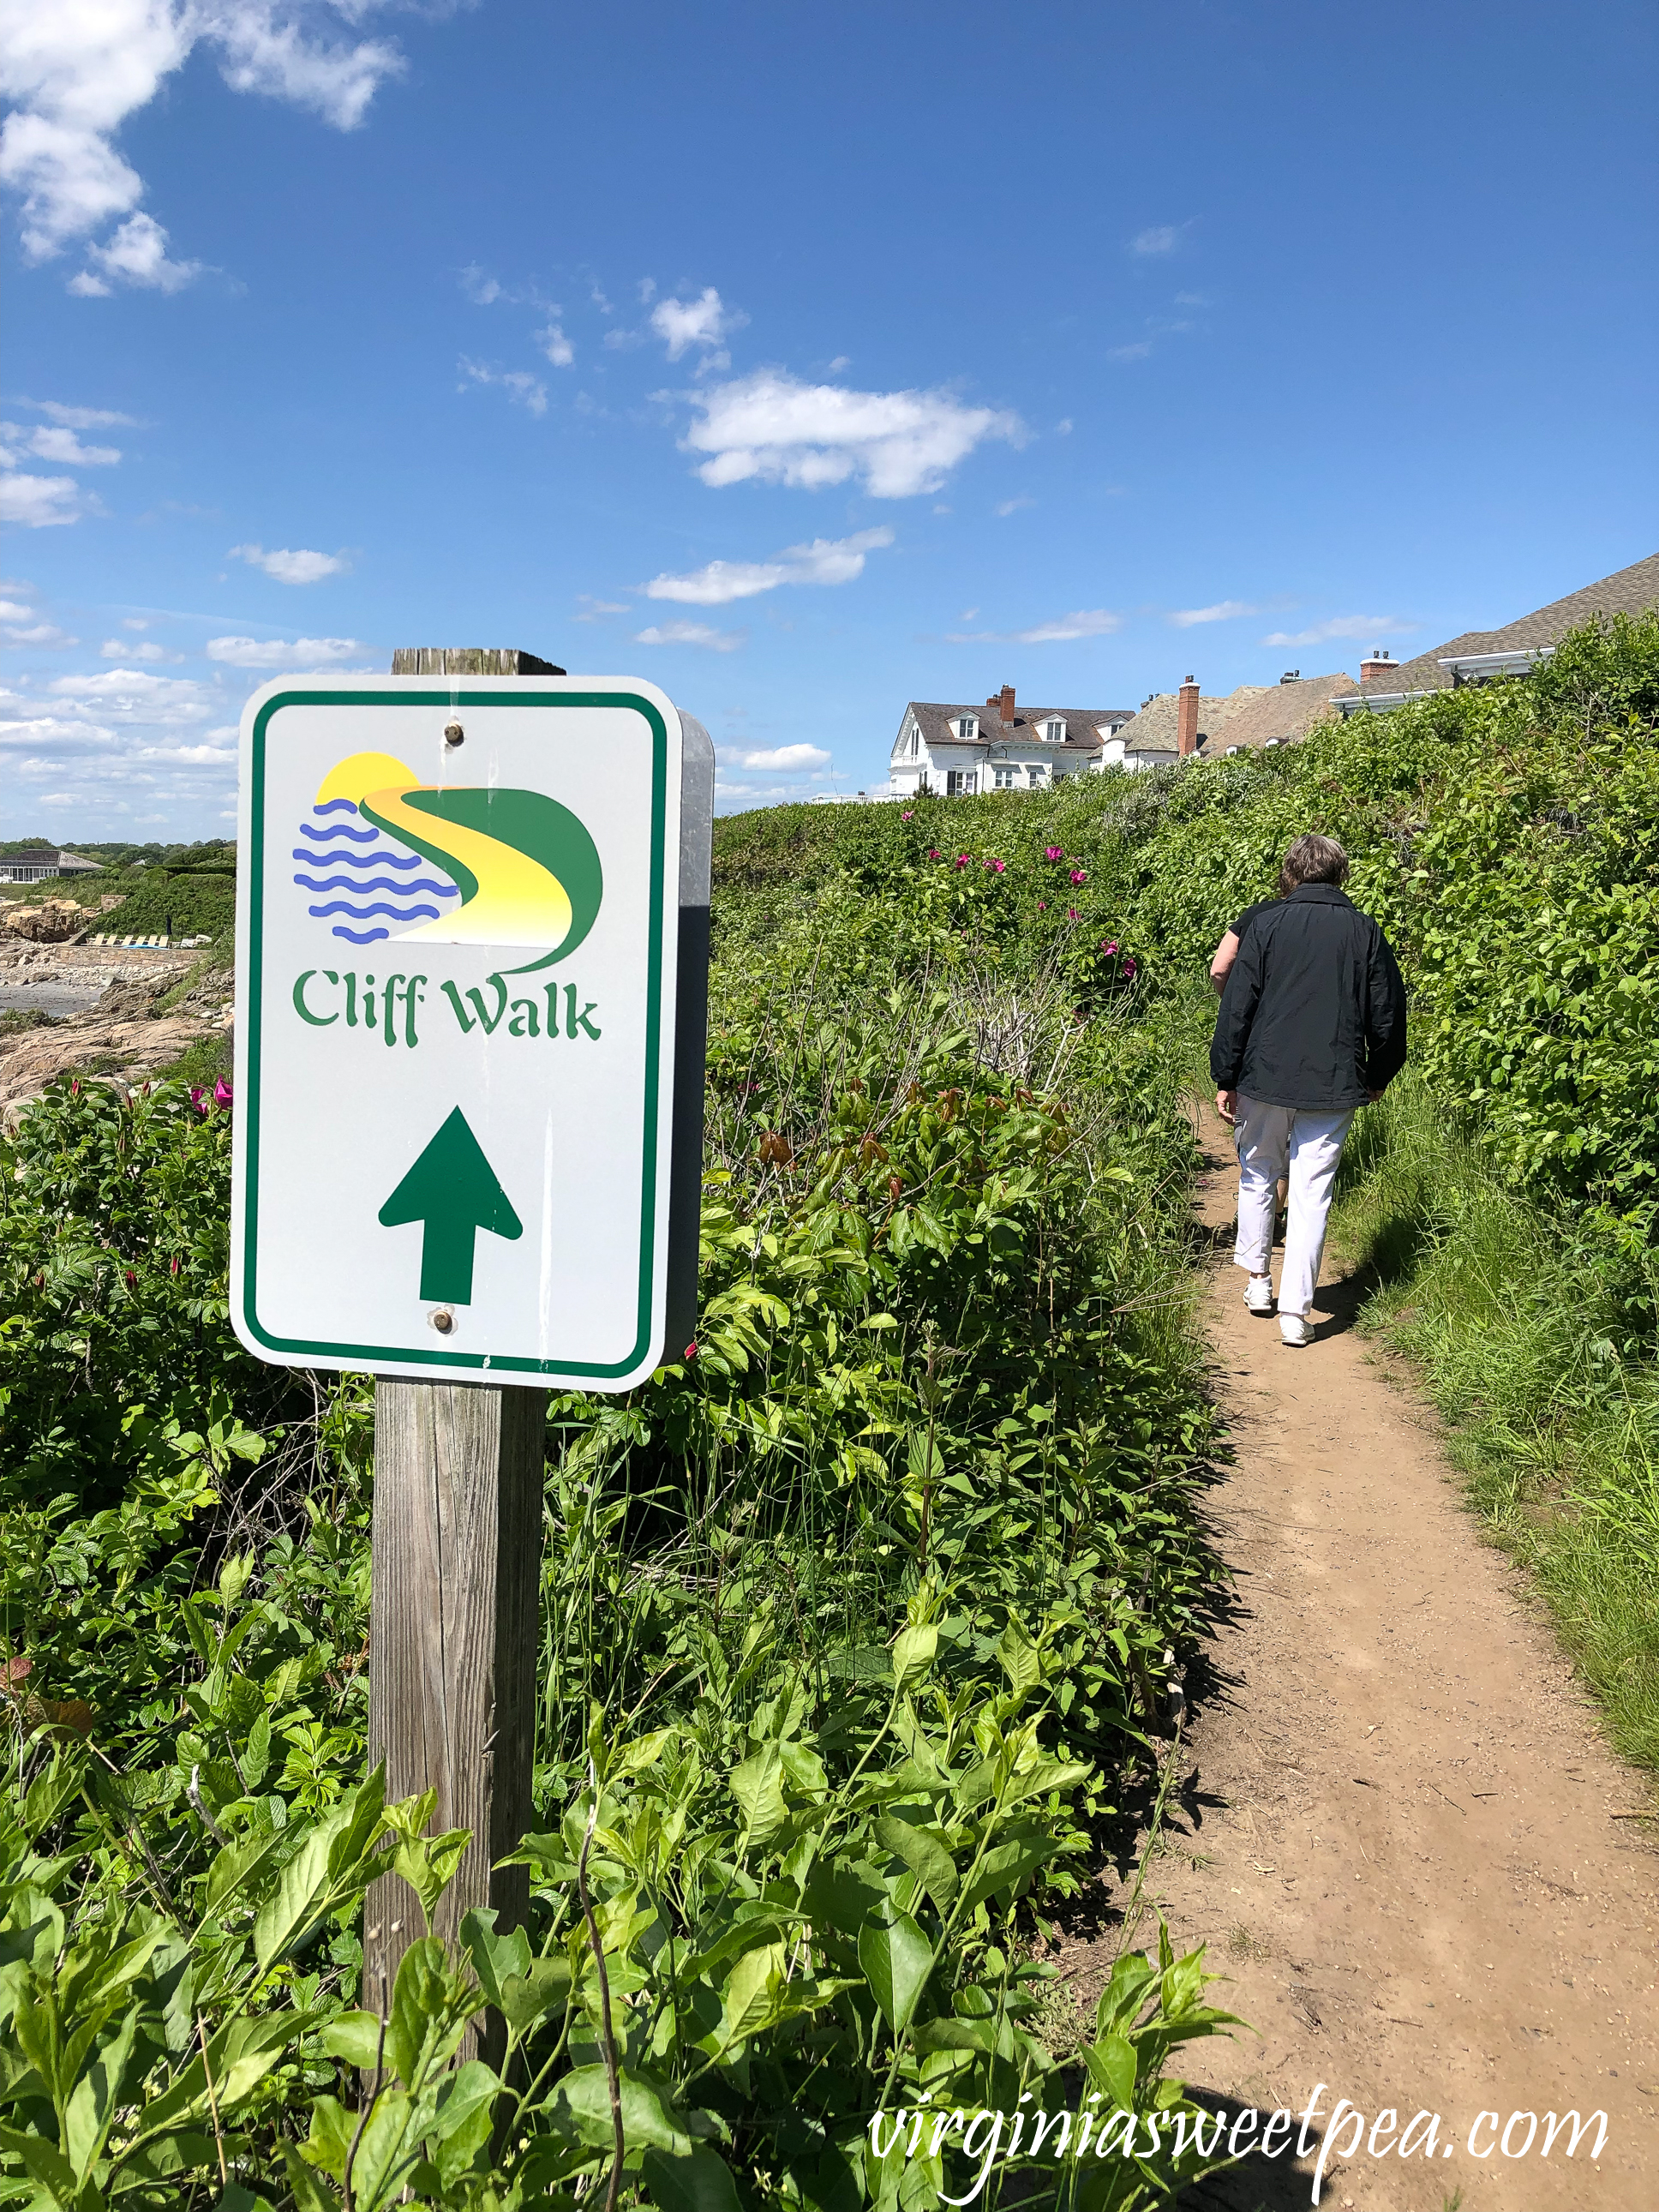 Cliff Walk in Newport, RI